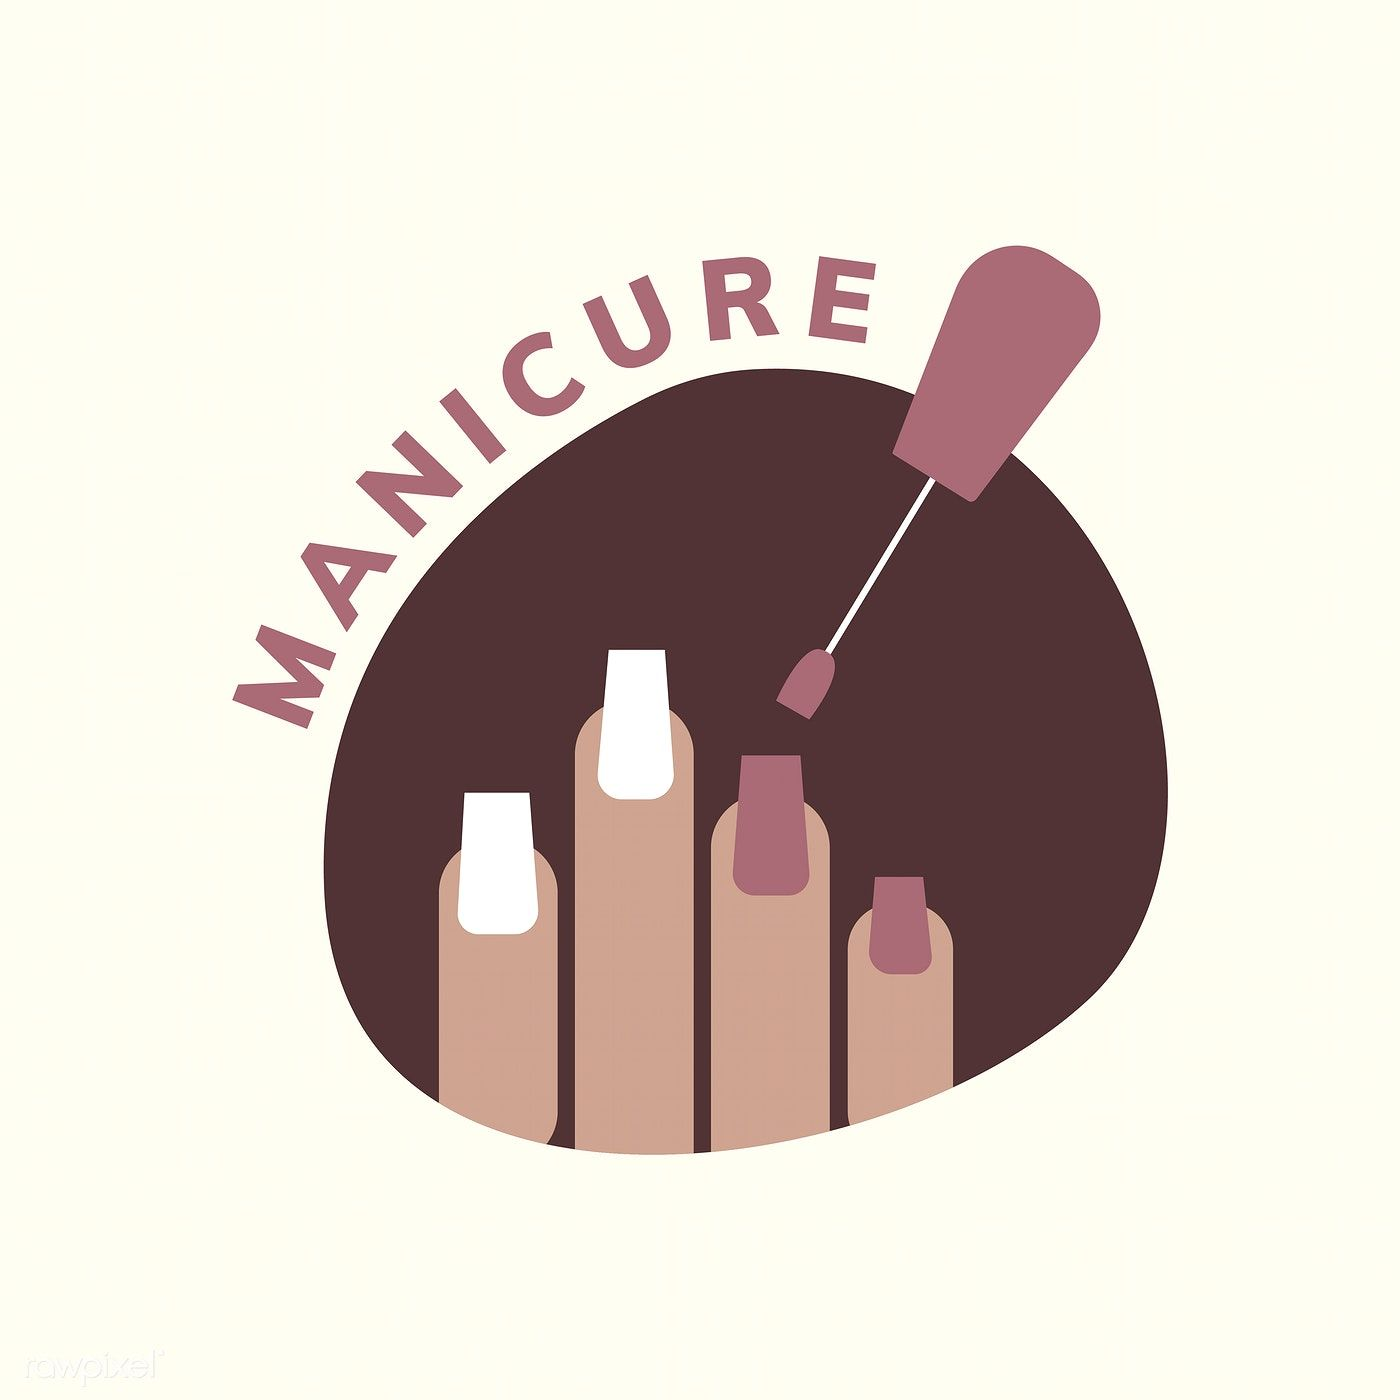 Manicure and pedicure salon logo free image by rawpixel